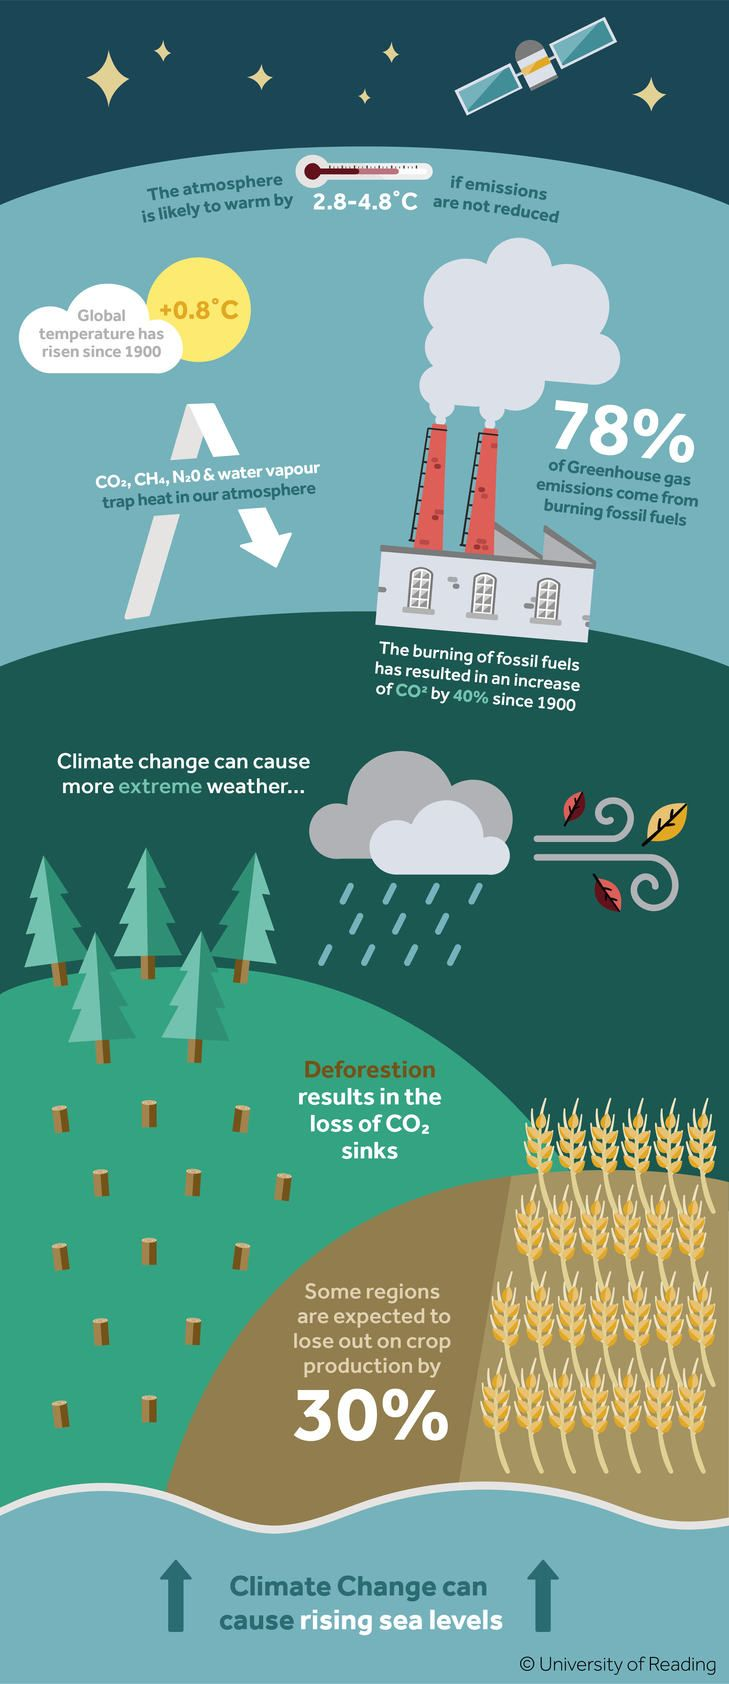 An infographic on climate change stating the following: The atmosphere is likely to warm by 2.8 to 4.8 degrees Celsius if emissions are not reduced. Global temperature has risen 0.8 degrees Celsius since 1900. Carbon dioxide, methane, nitrogen and water vapour trap heat in our atmosphere. 78% of Greenhouse gas emissions come from burning fossil fuels. The burning of fossil fuels has resulted in an increase of carbon dioxide by 40% since 1900. Climate change can cause more extreme weather…